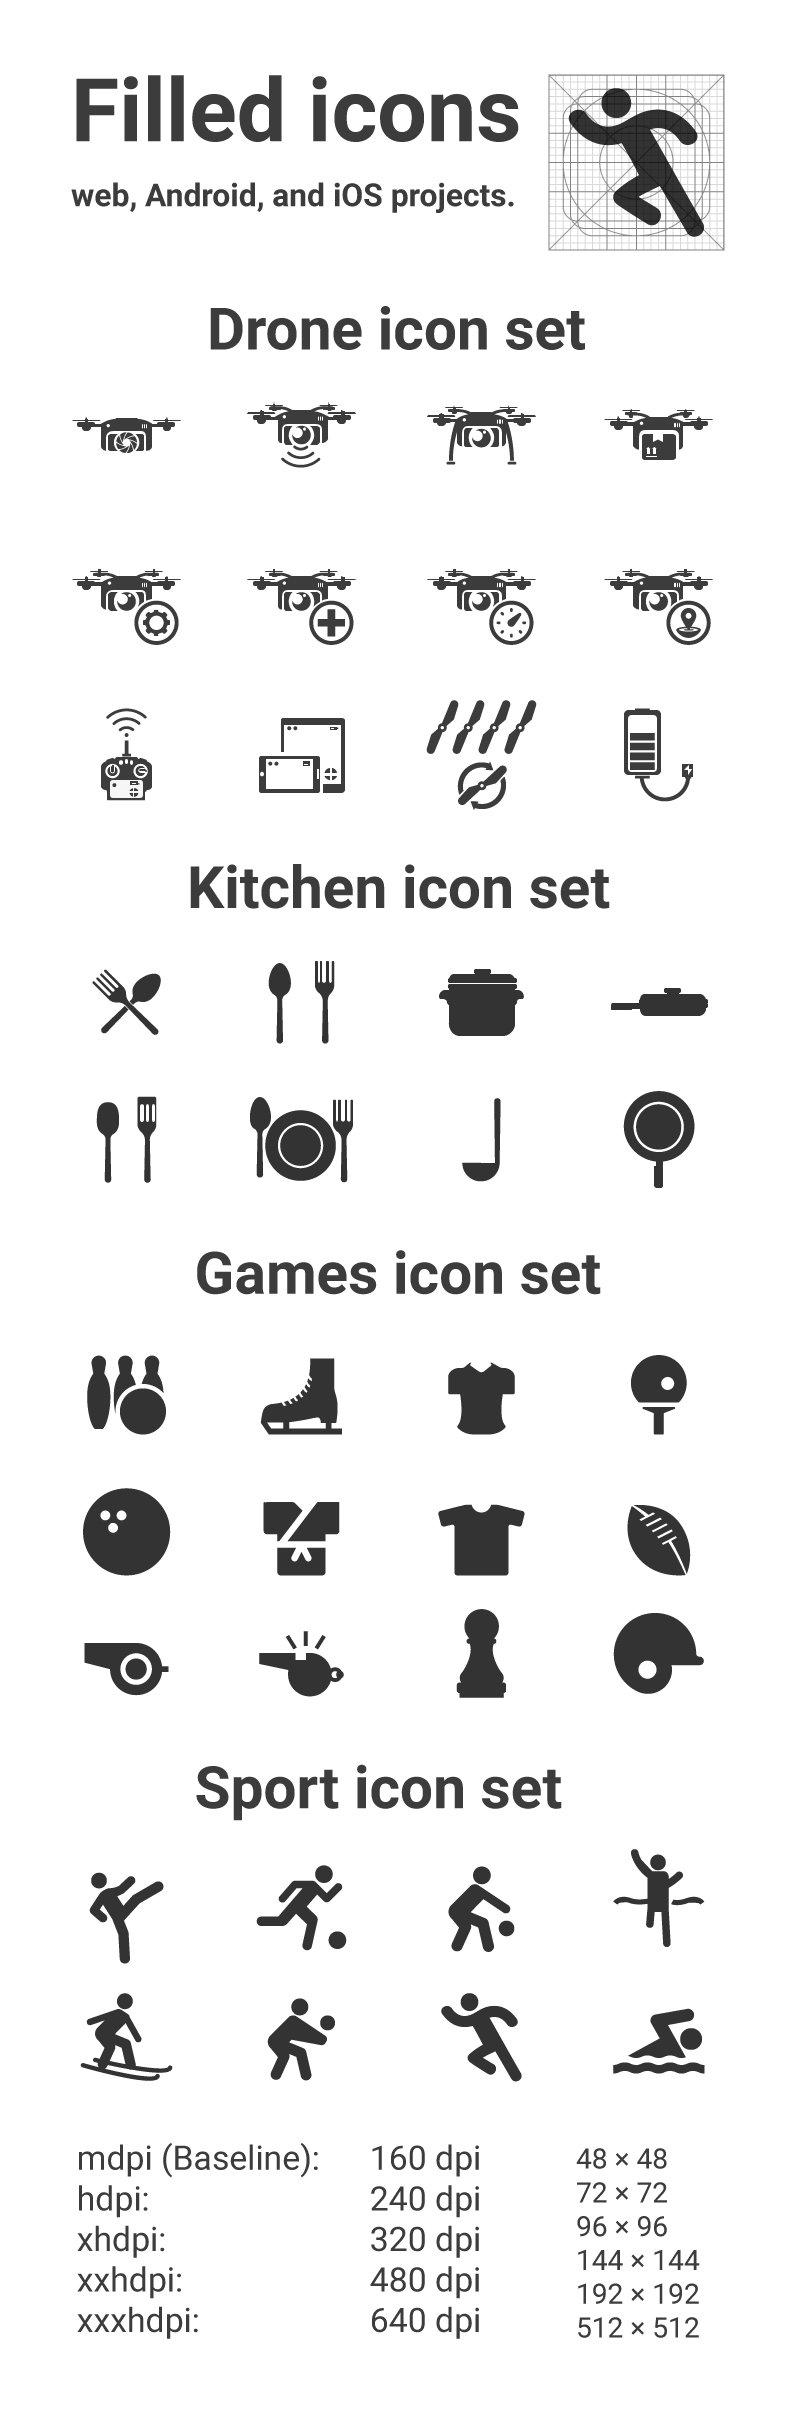 filled-icons-2